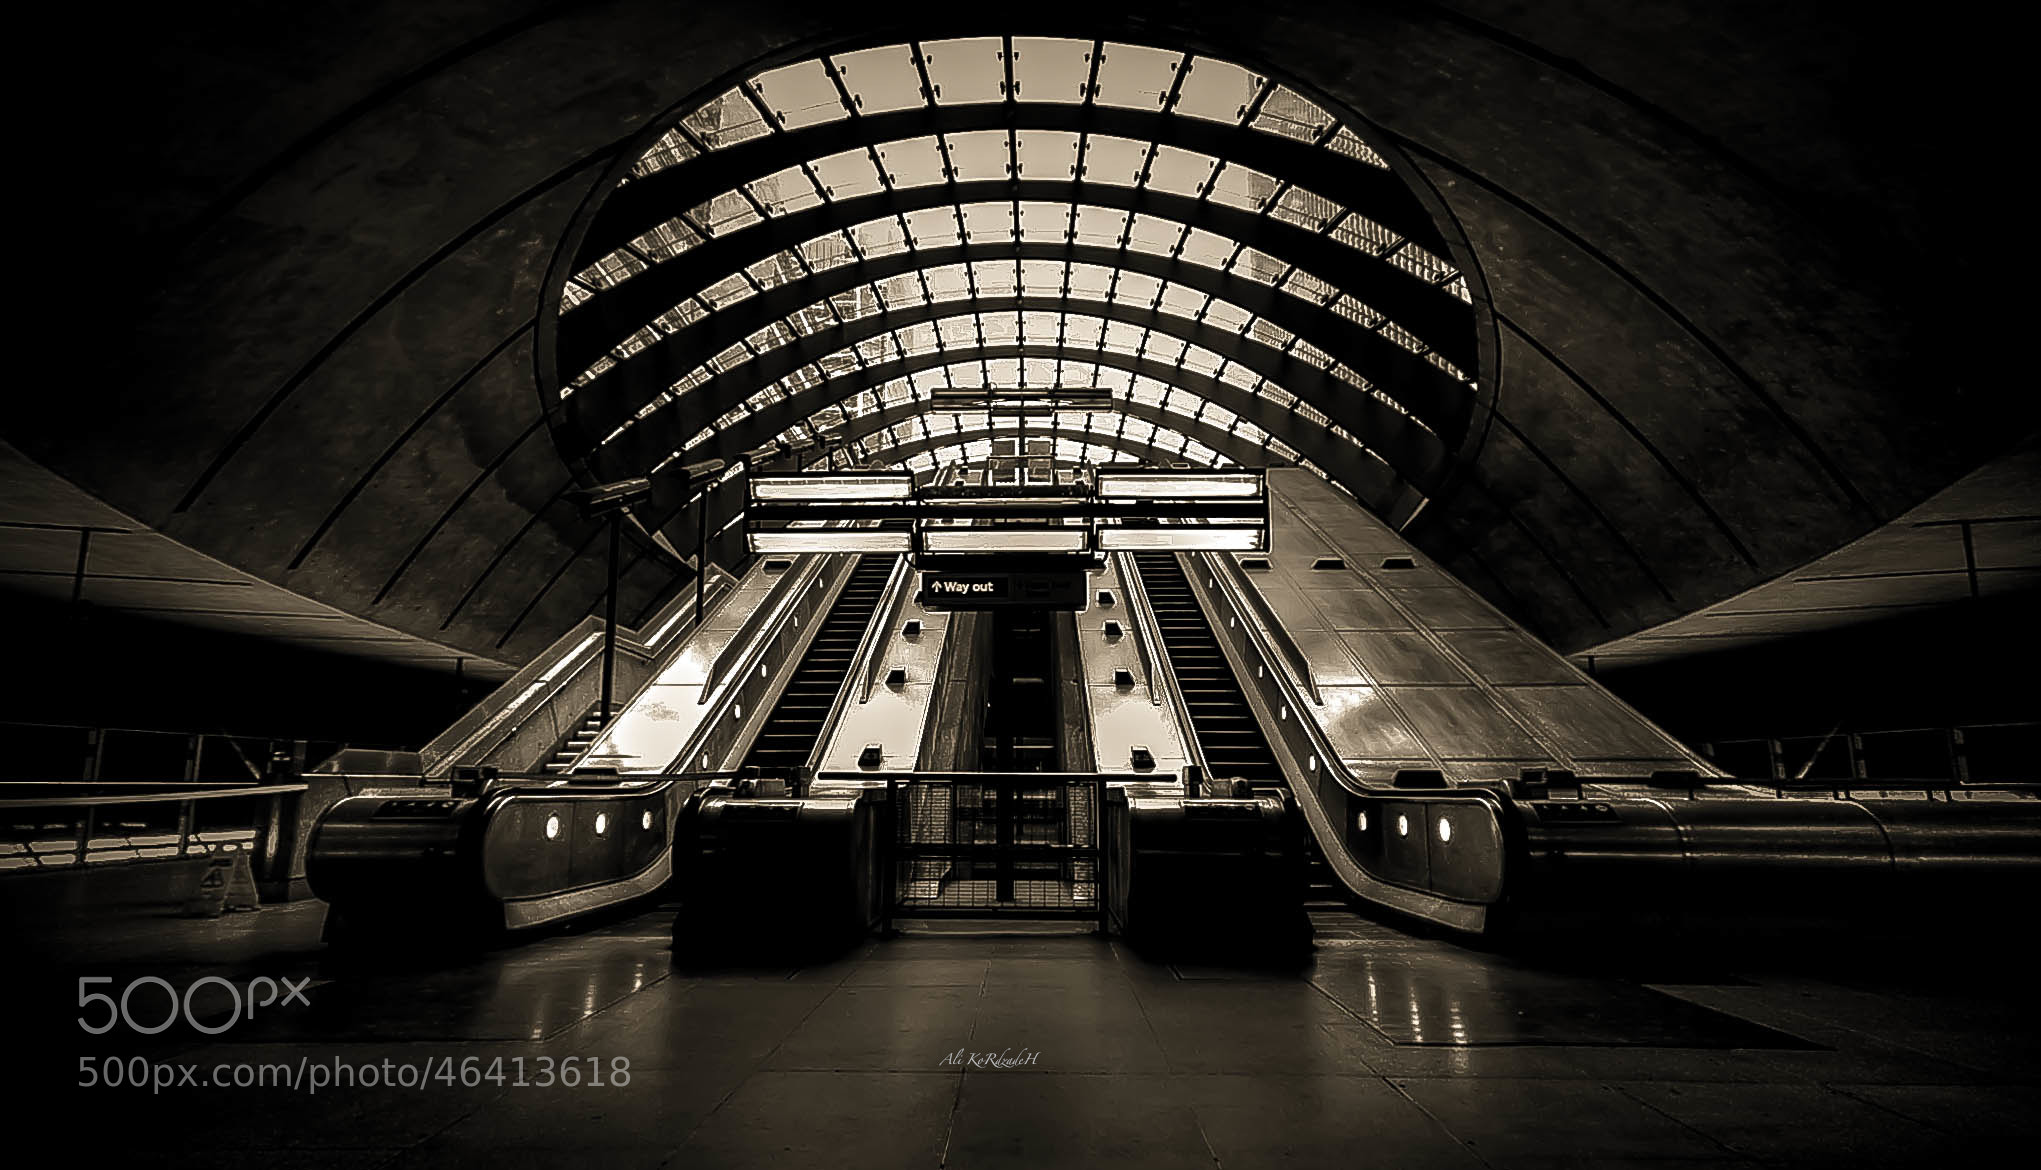 Photograph Way Out by Ali KoRdZaDeh on 500px